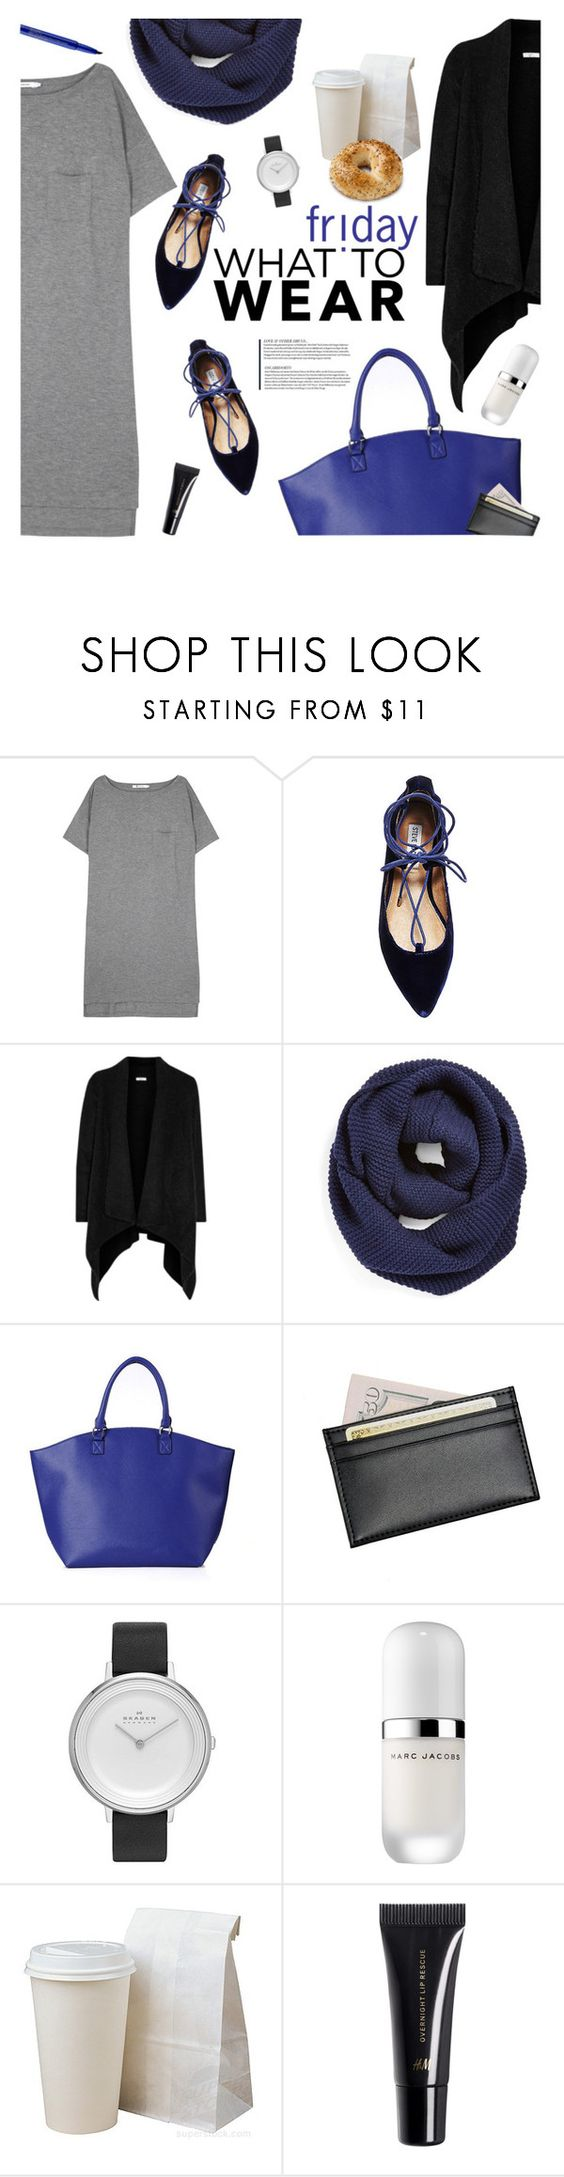 """""""Comfy and easy"""" by magdafunk ❤ liked on Polyvore featuring T By Alexander Wang, Steve Madden, Joie, BP., Royce Leather, Skagen, Marc Jacobs, H&M and Smashbox"""